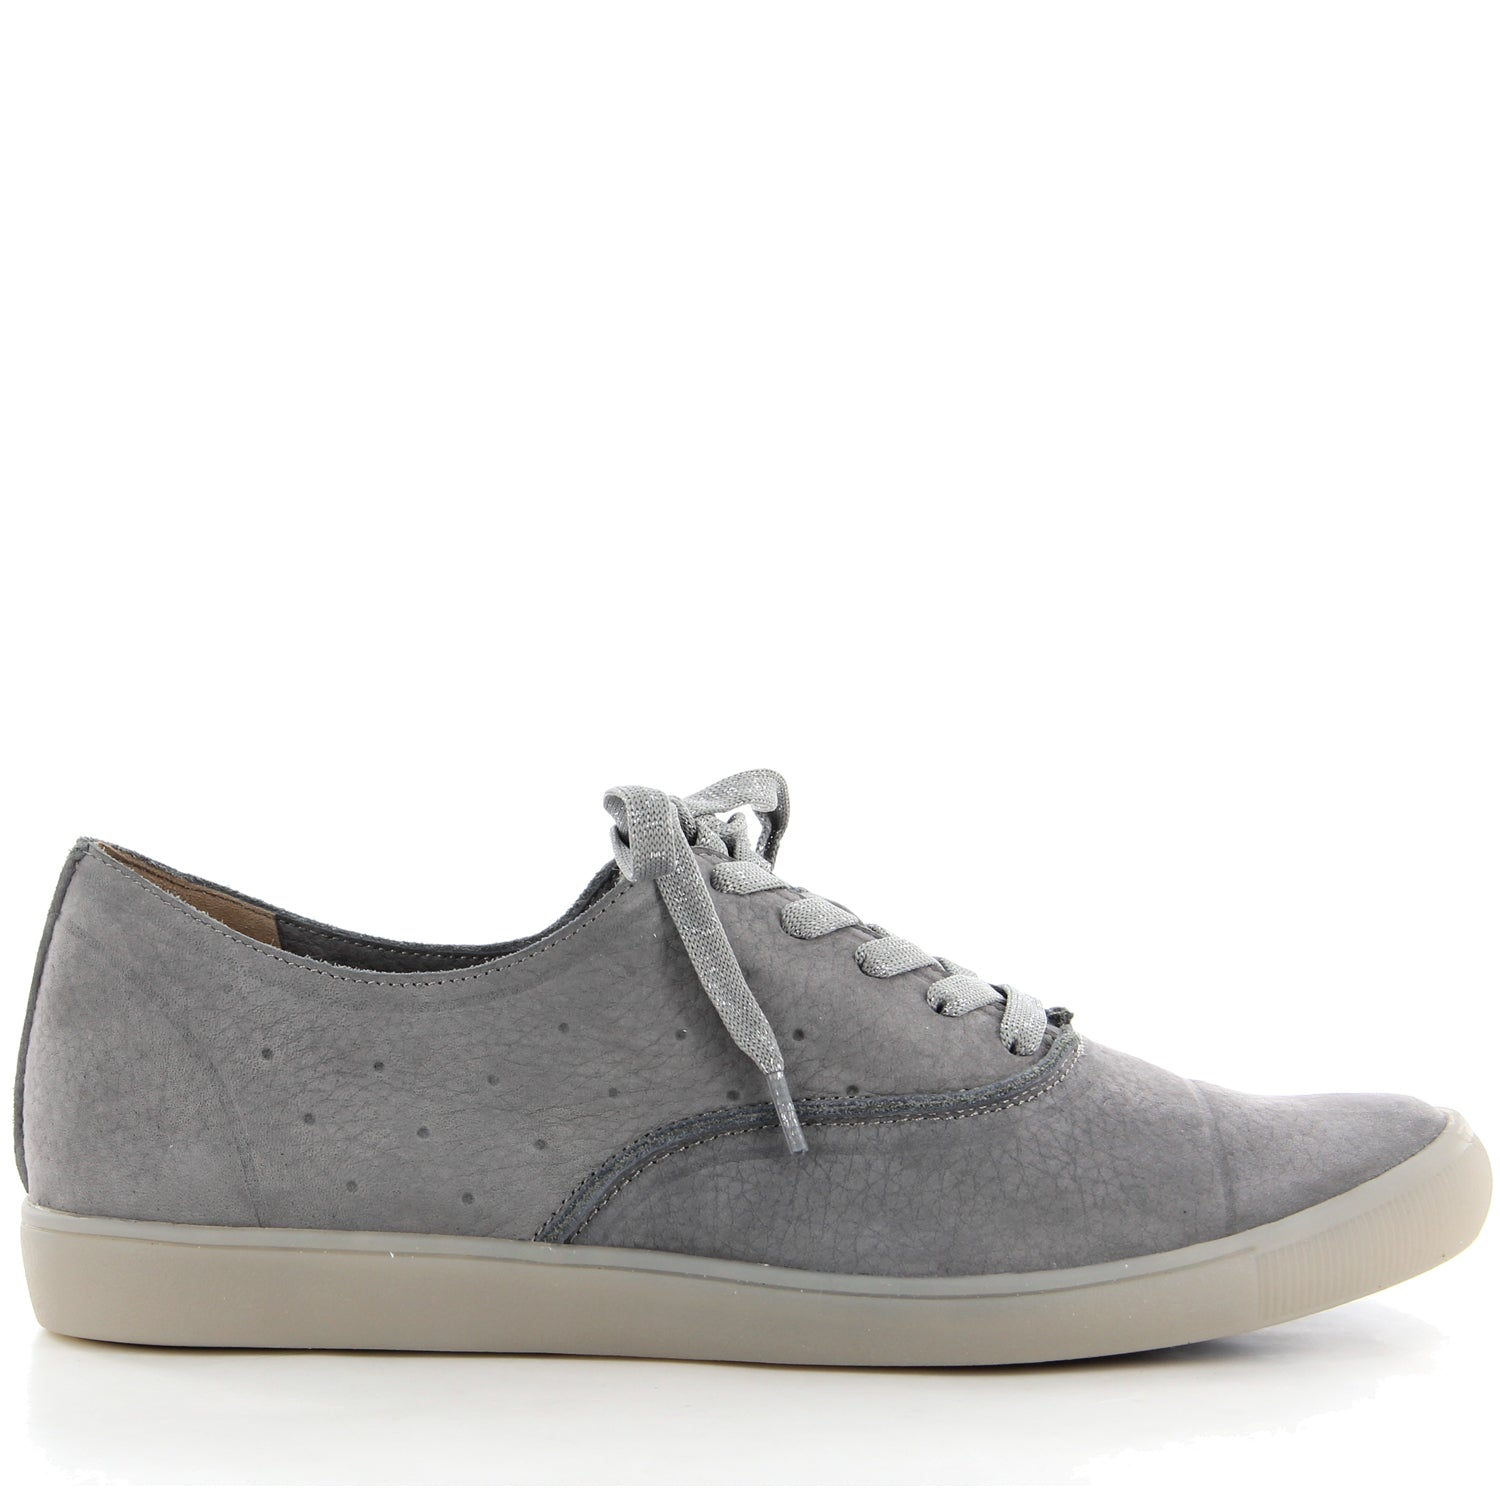 DIAMOND FF - GREY NUBUCK